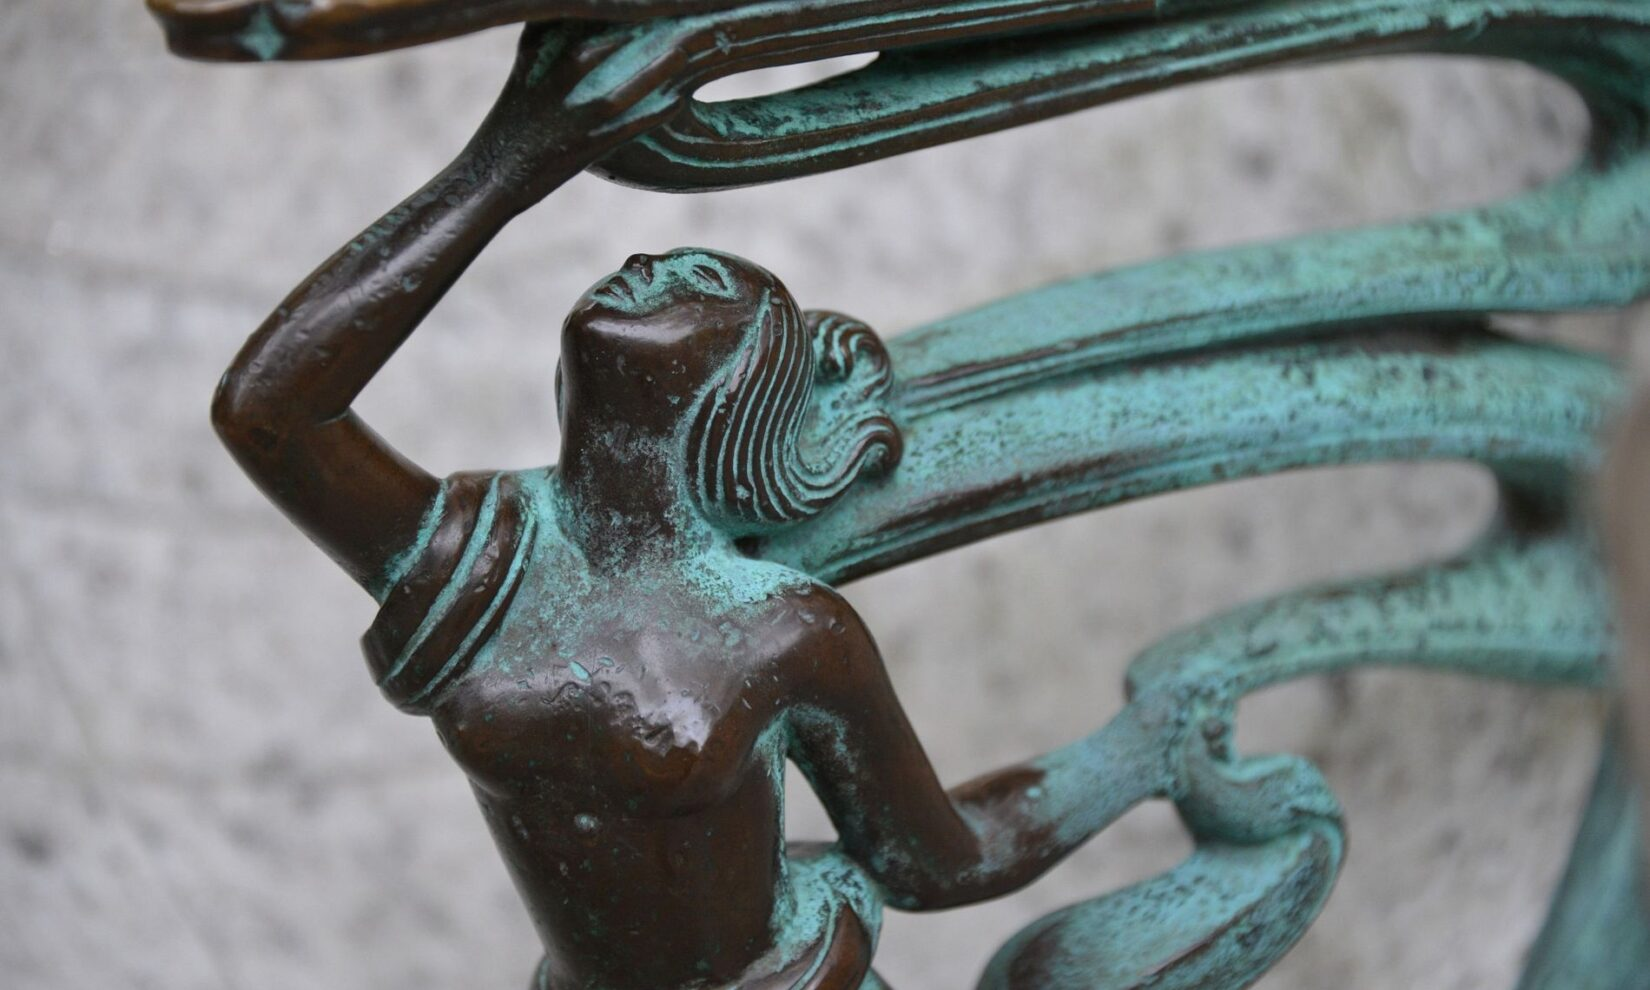 Sculptural detail of the bench shows a woman form, reaching up.